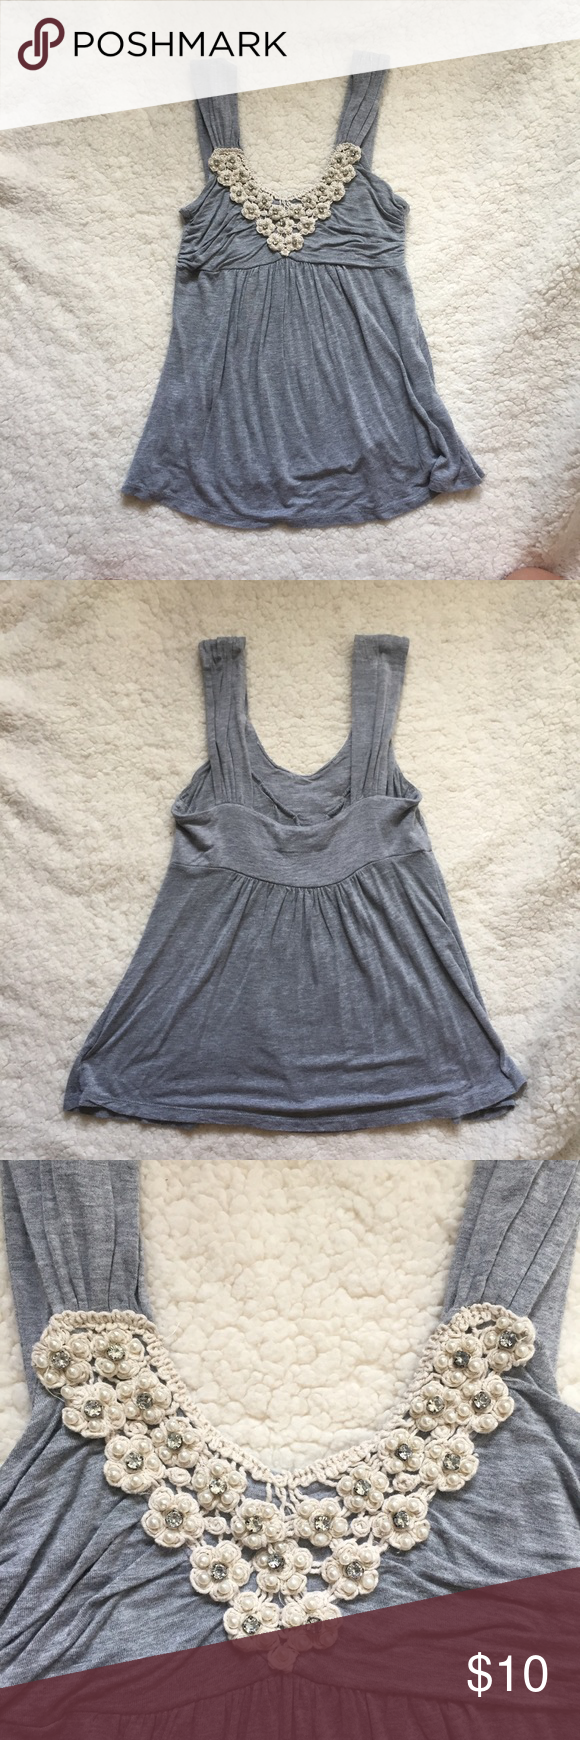 Gray Dressy Top ✨ Absolutely beautiful gray top with crochet and rhinestone detail. Only been worn once and there are no signs of wear 👍🏼  Make an offer 😄 Forever 21 Tops Blouses